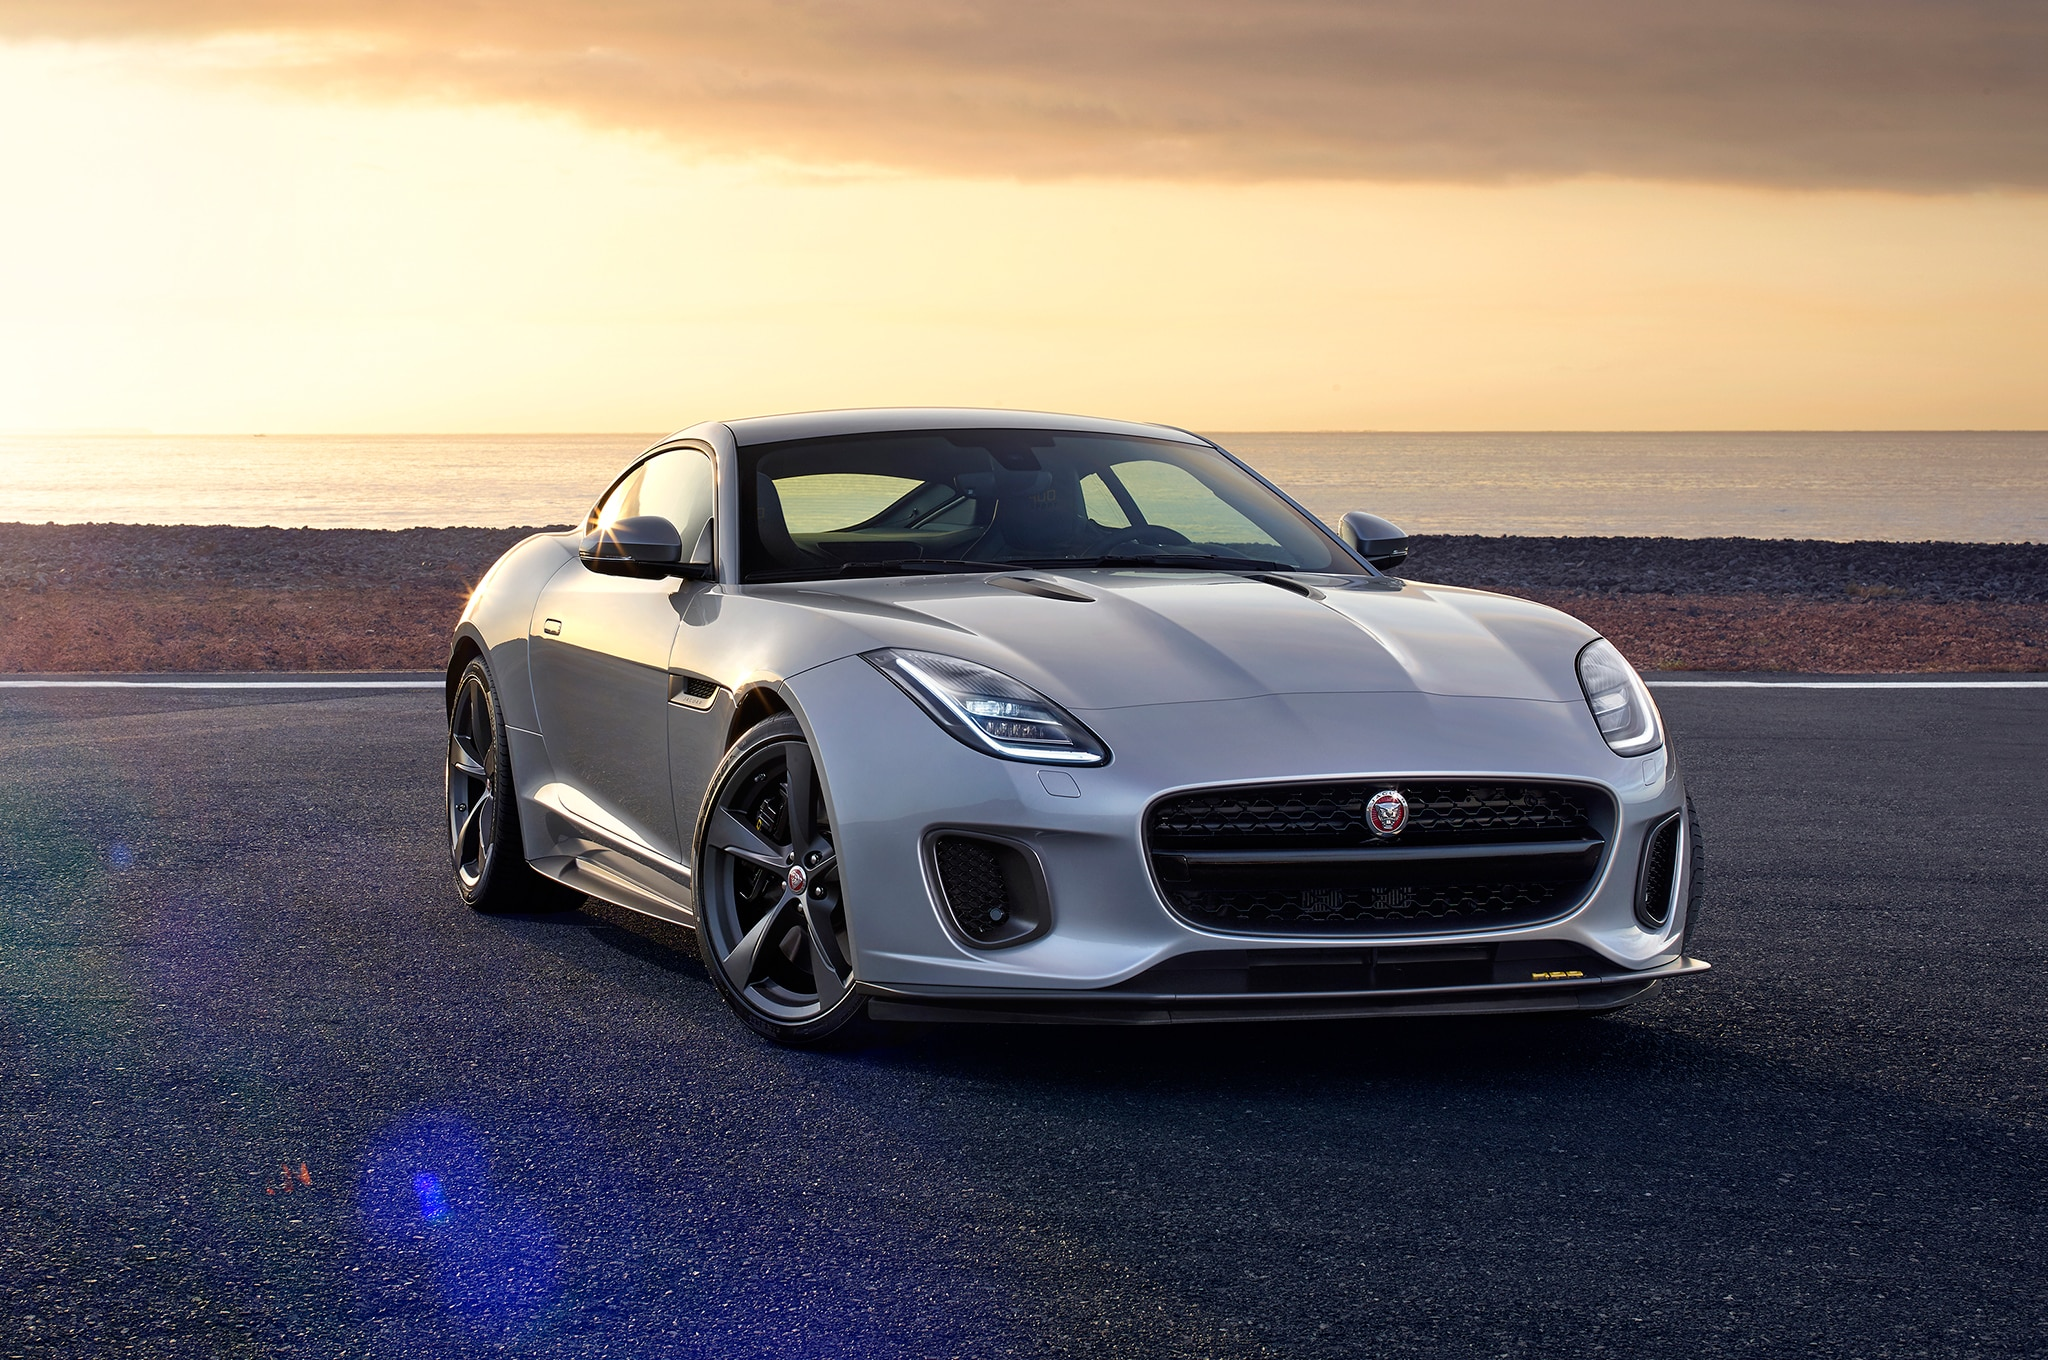 Now You Can Rent A Jag F Type SVR at Enterprise